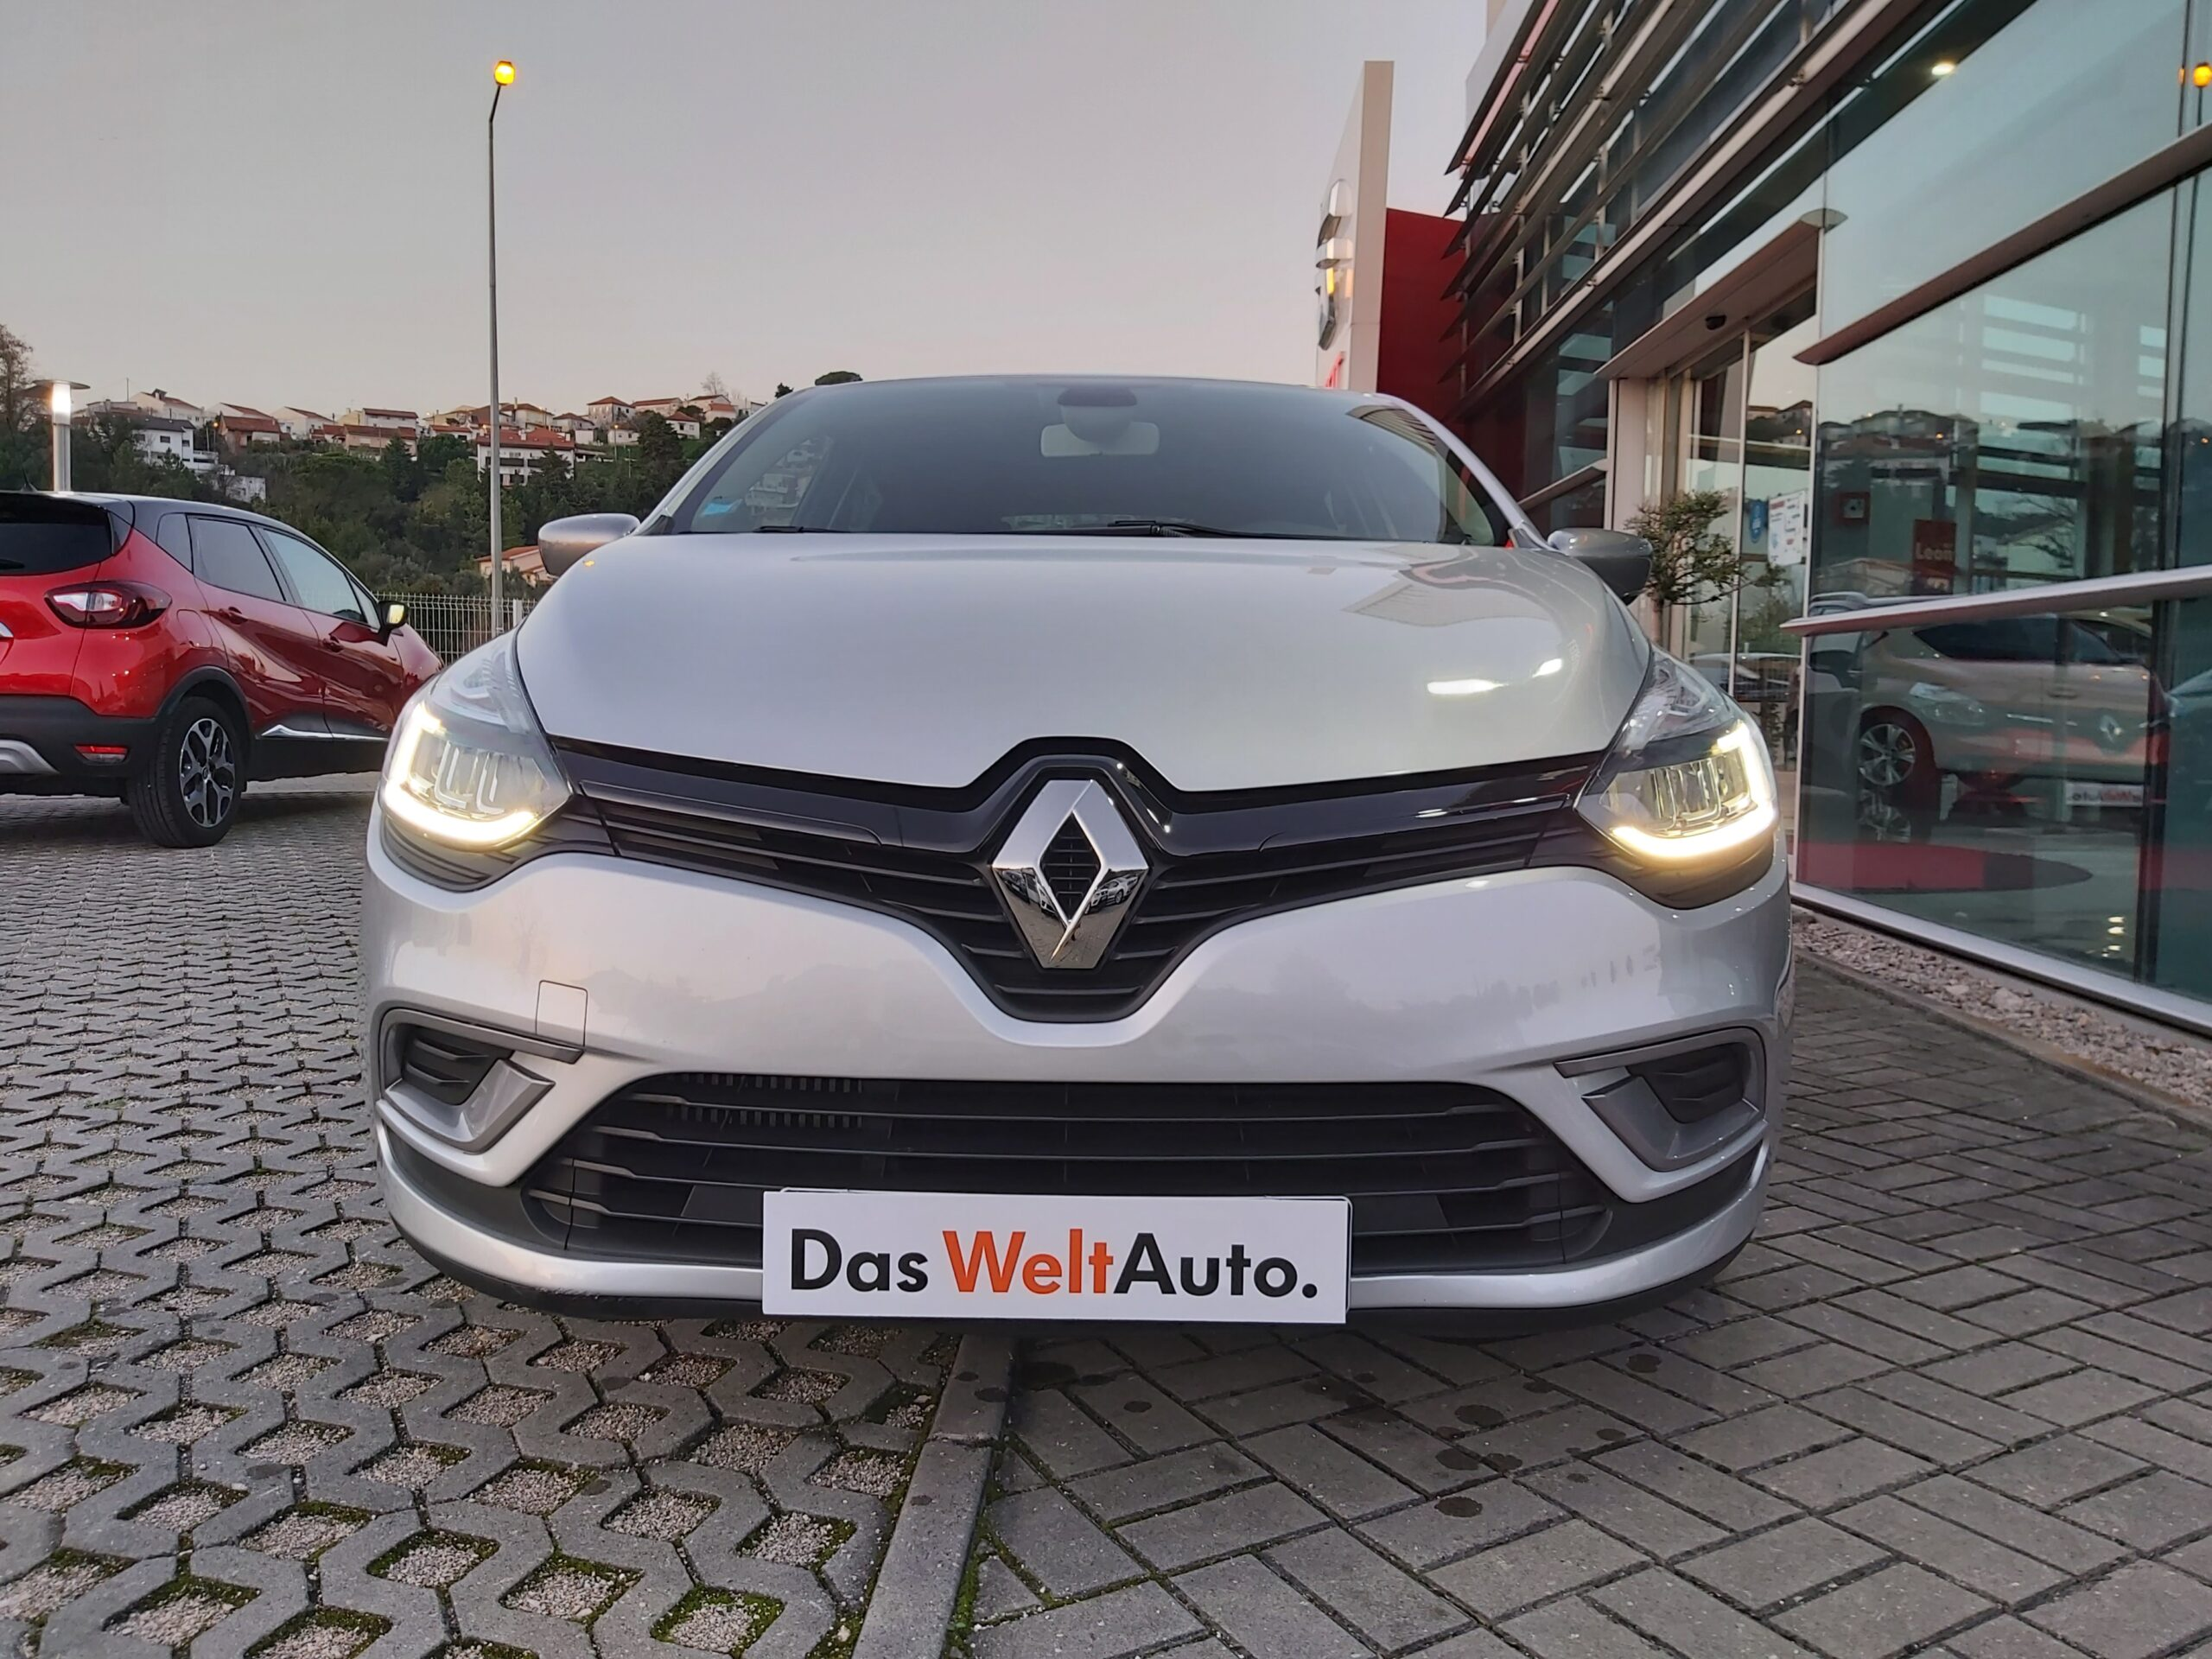 RENAULT Clio GT Line 0.9 TCE 90cv full